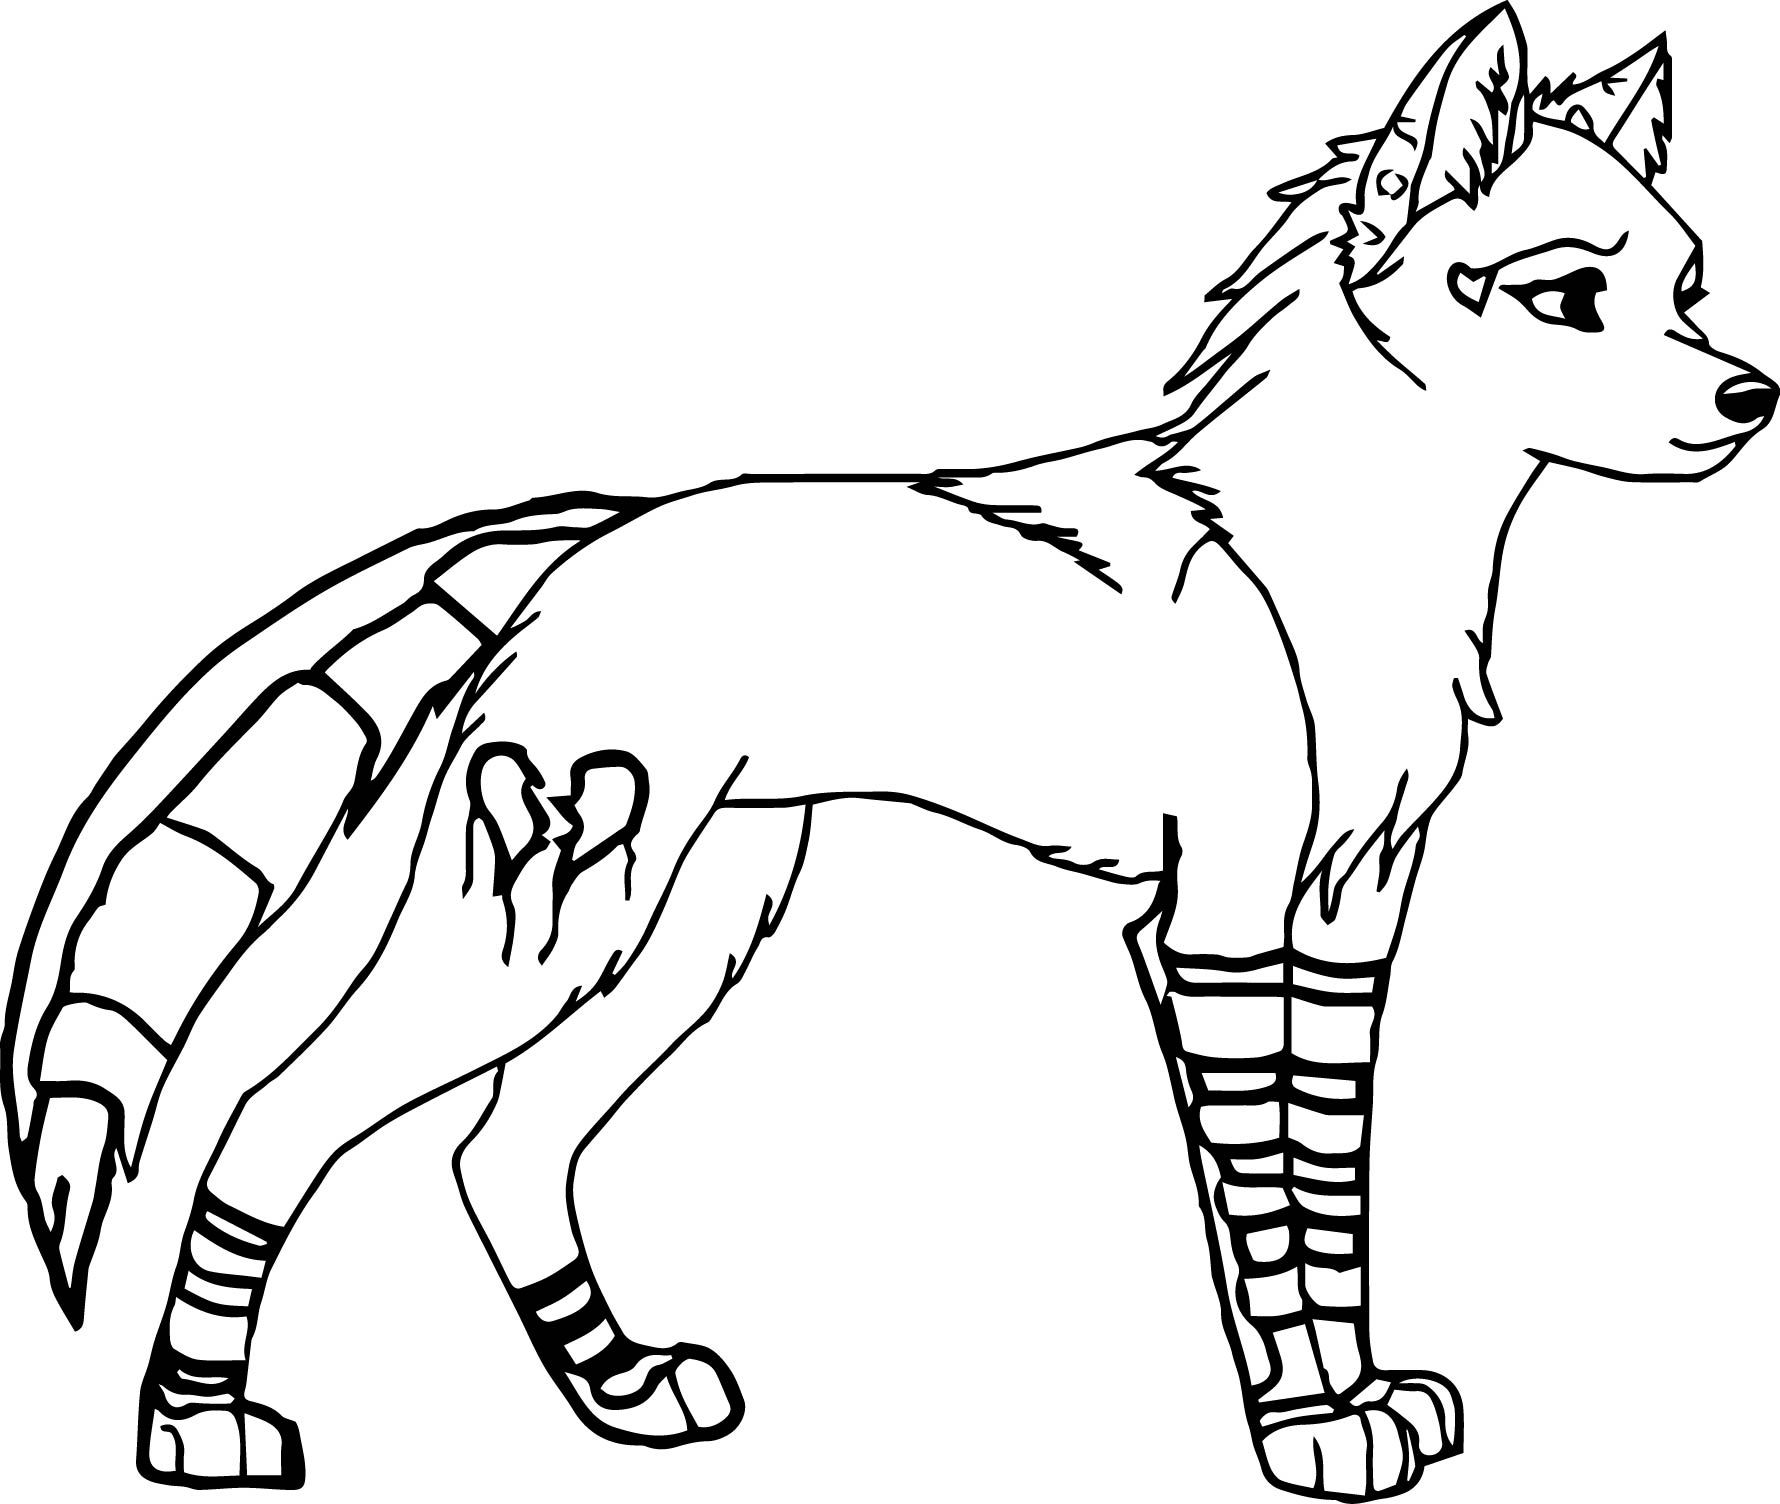 wolf coloring images wolf coloring pages coloring pages to download and print coloring wolf images